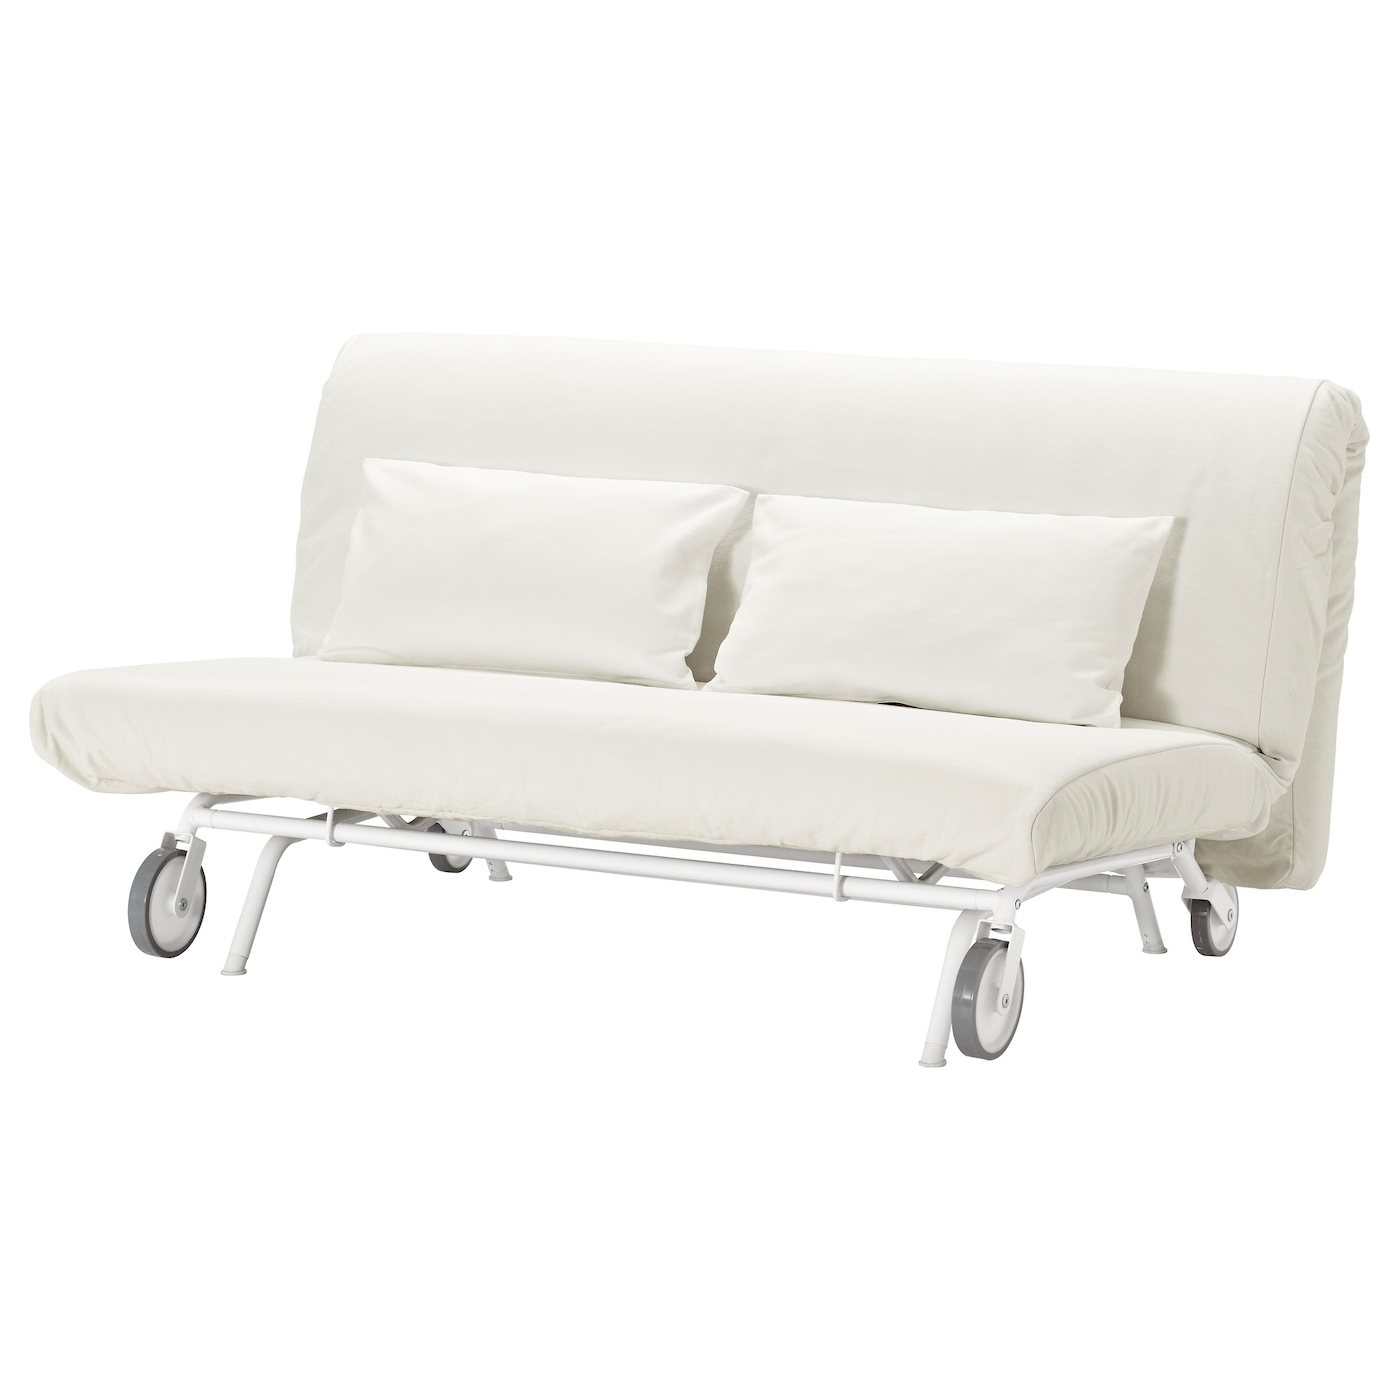 Ikea Ps Murbo Two Seat Sofa Bed Grsbo White Ikea - best sofa bed mattress ikea